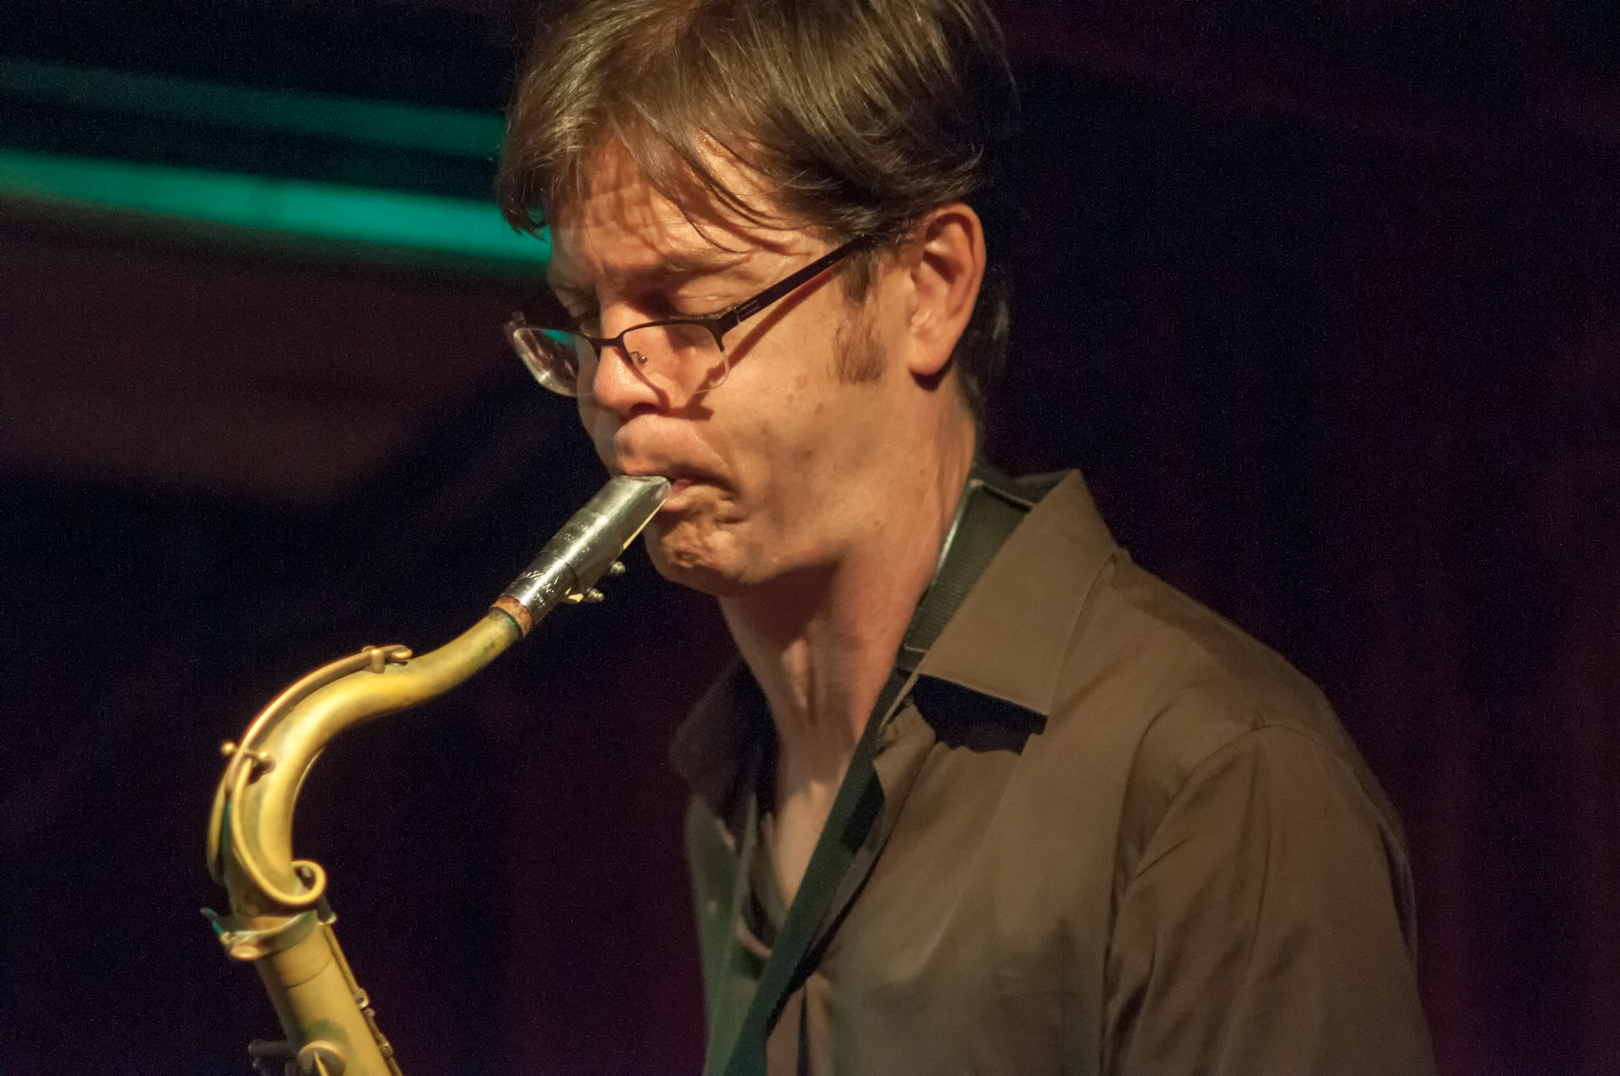 Donny McCaslin with Michael Bates at the Cornelia Street Cafe